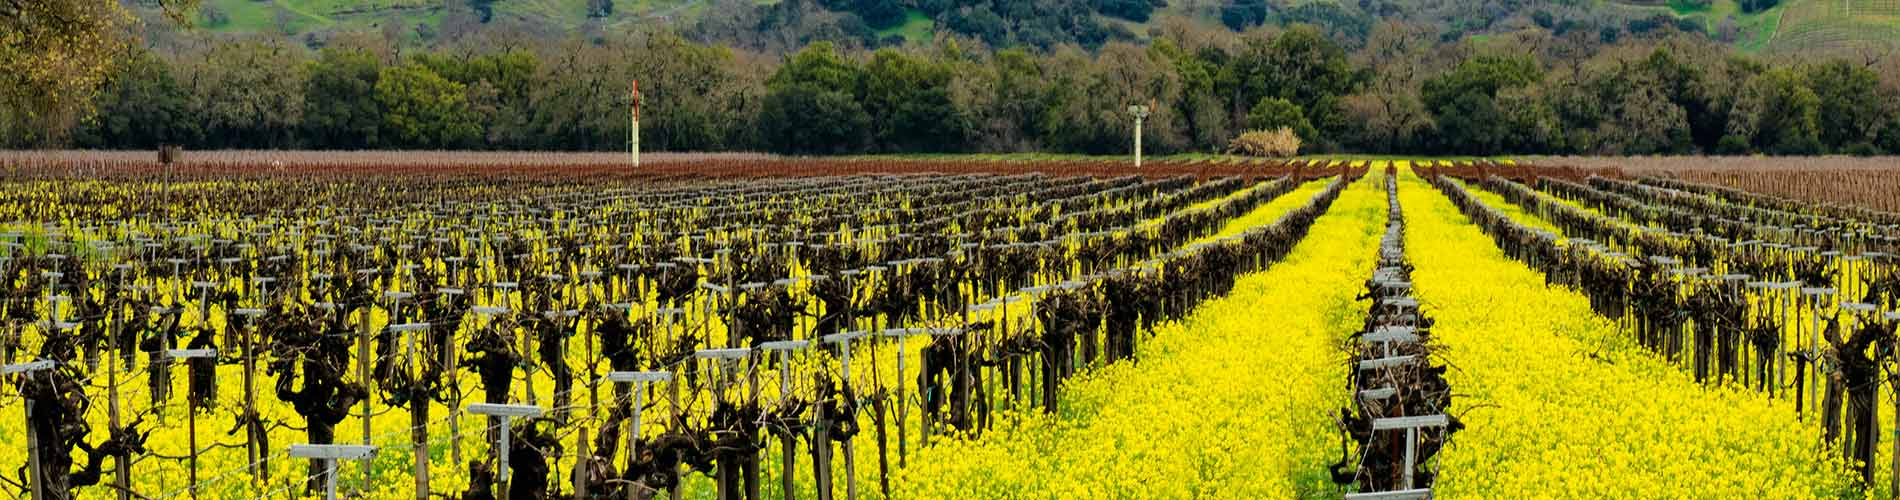 Napa Valley - Cultivating excellence